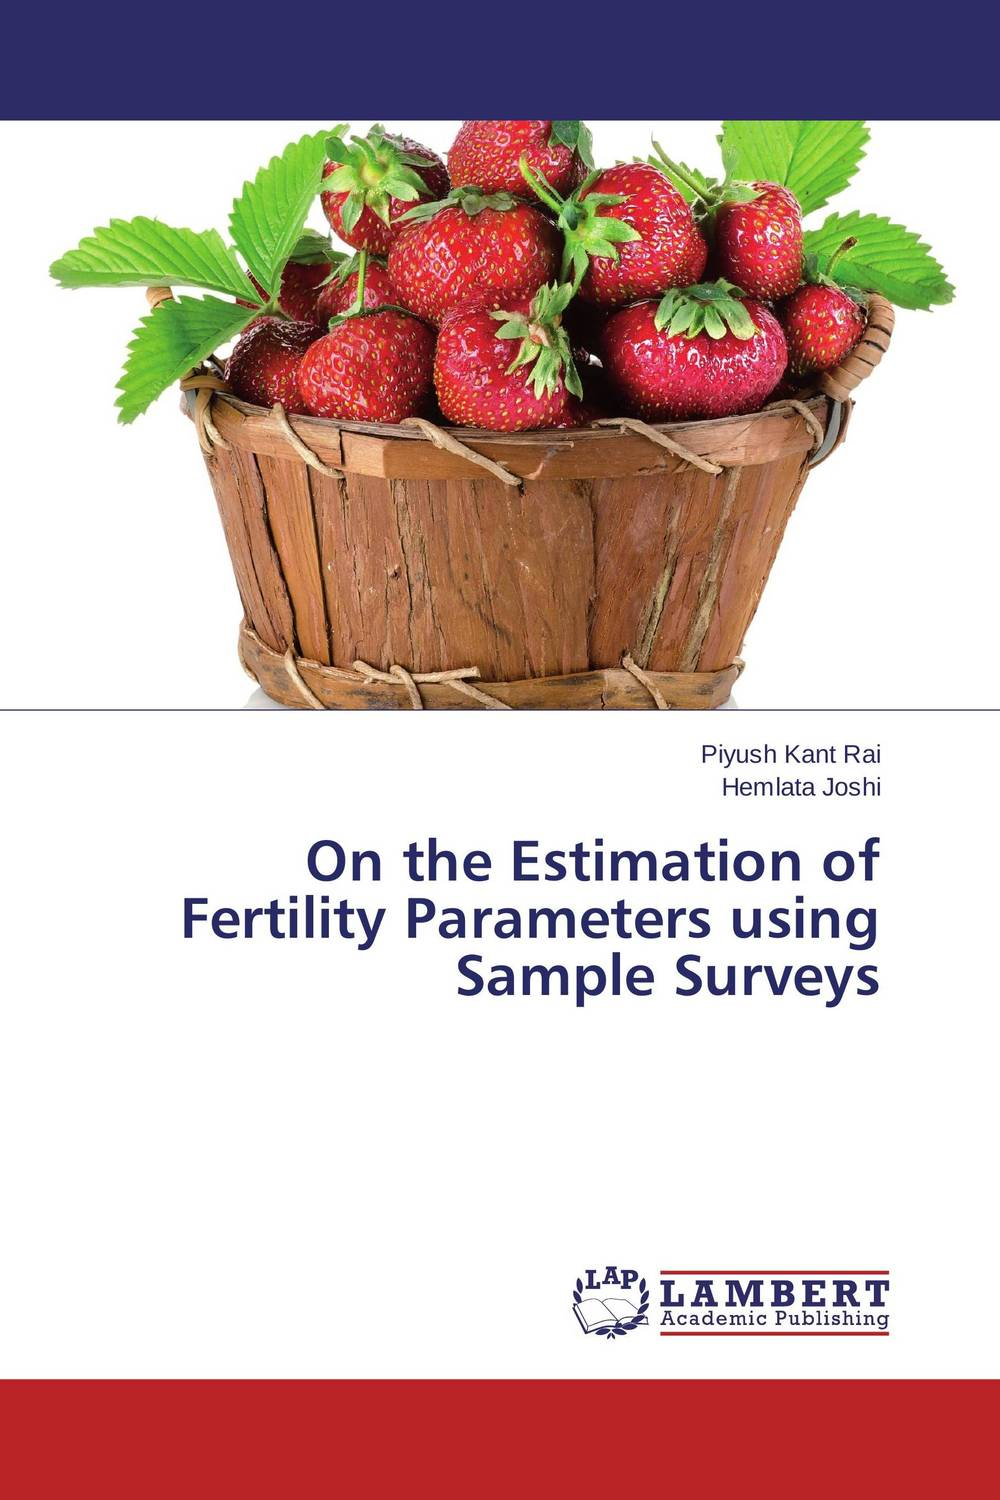 On the Estimation of Fertility Parameters using Sample Surveys vishnu gupta modulation of ovarian functions and fertility response using insulin